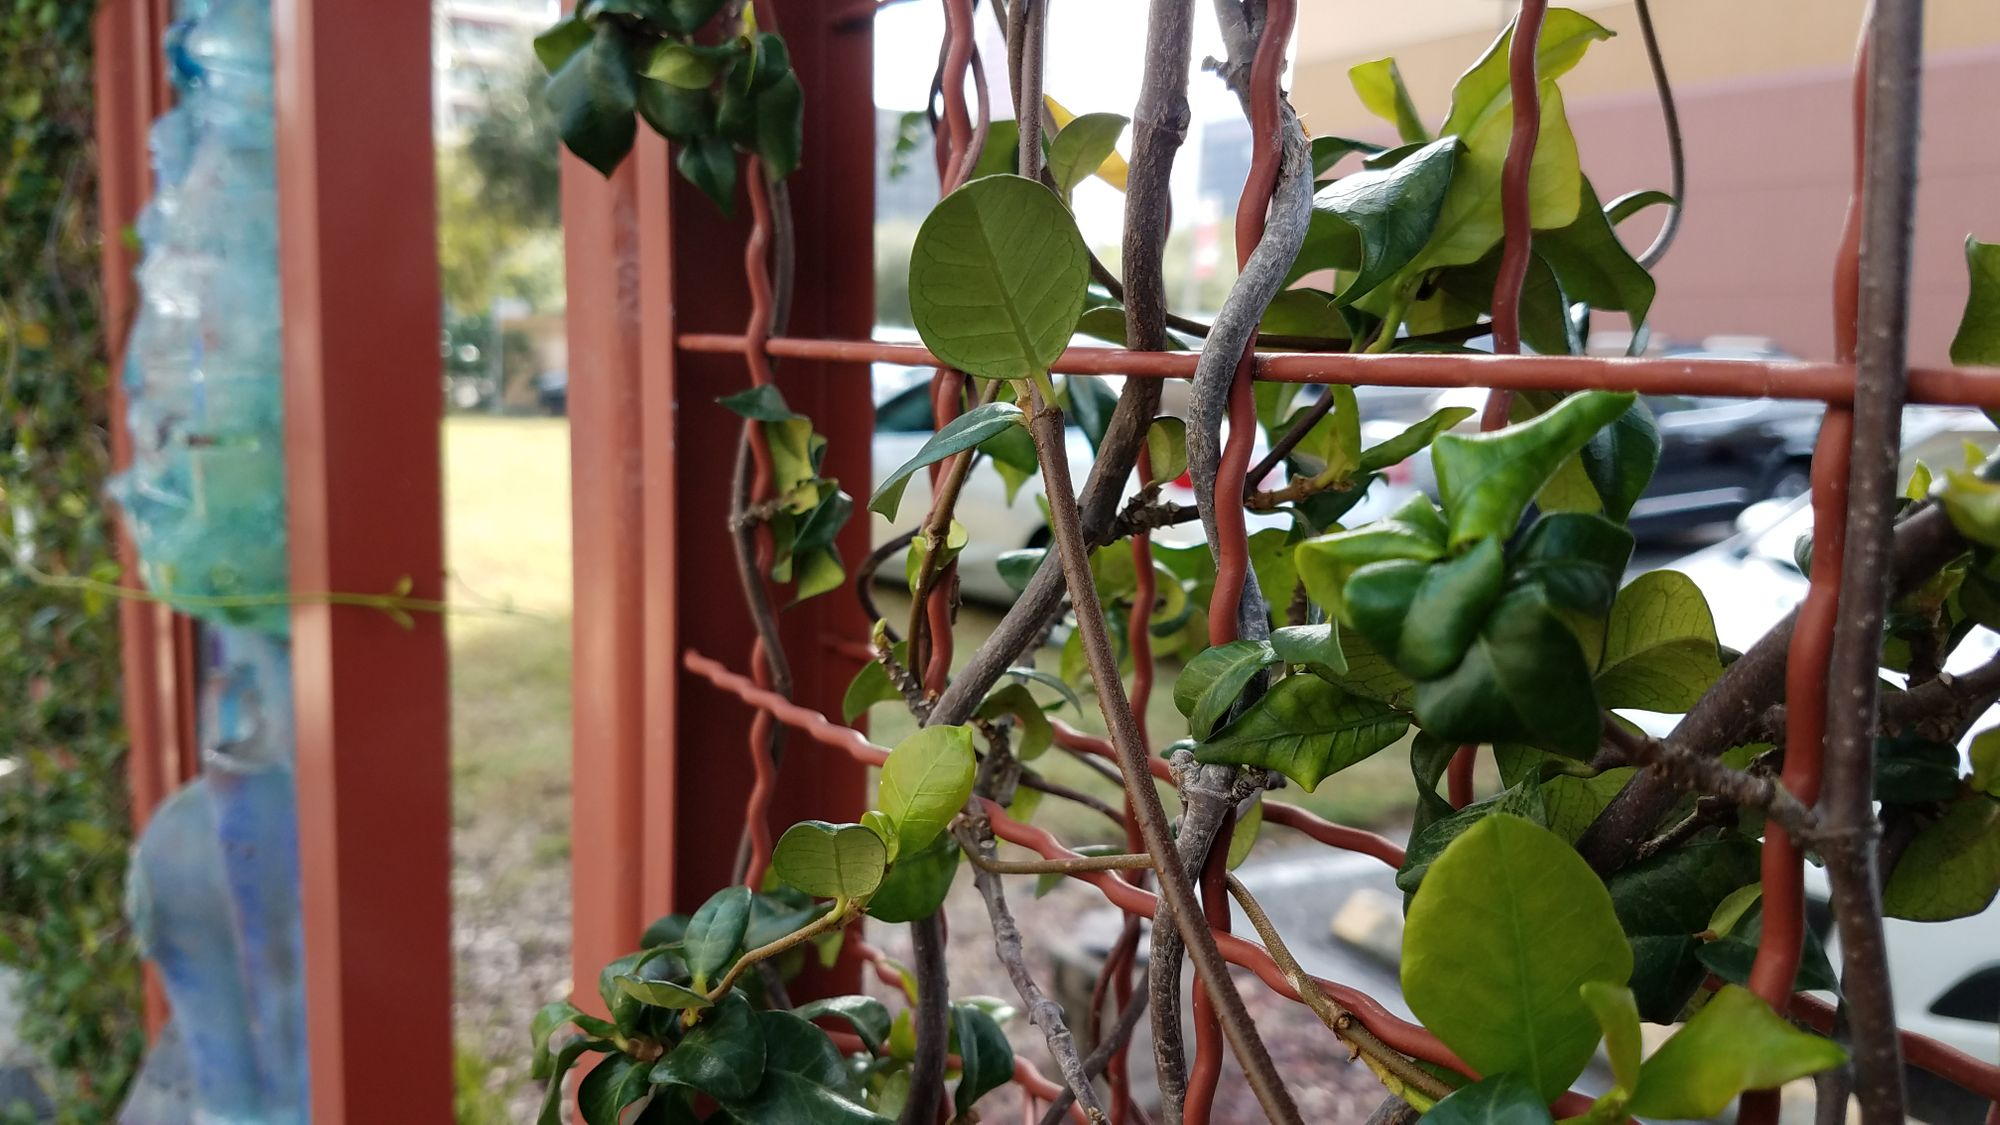 Woven wire mesh used to create a living wall